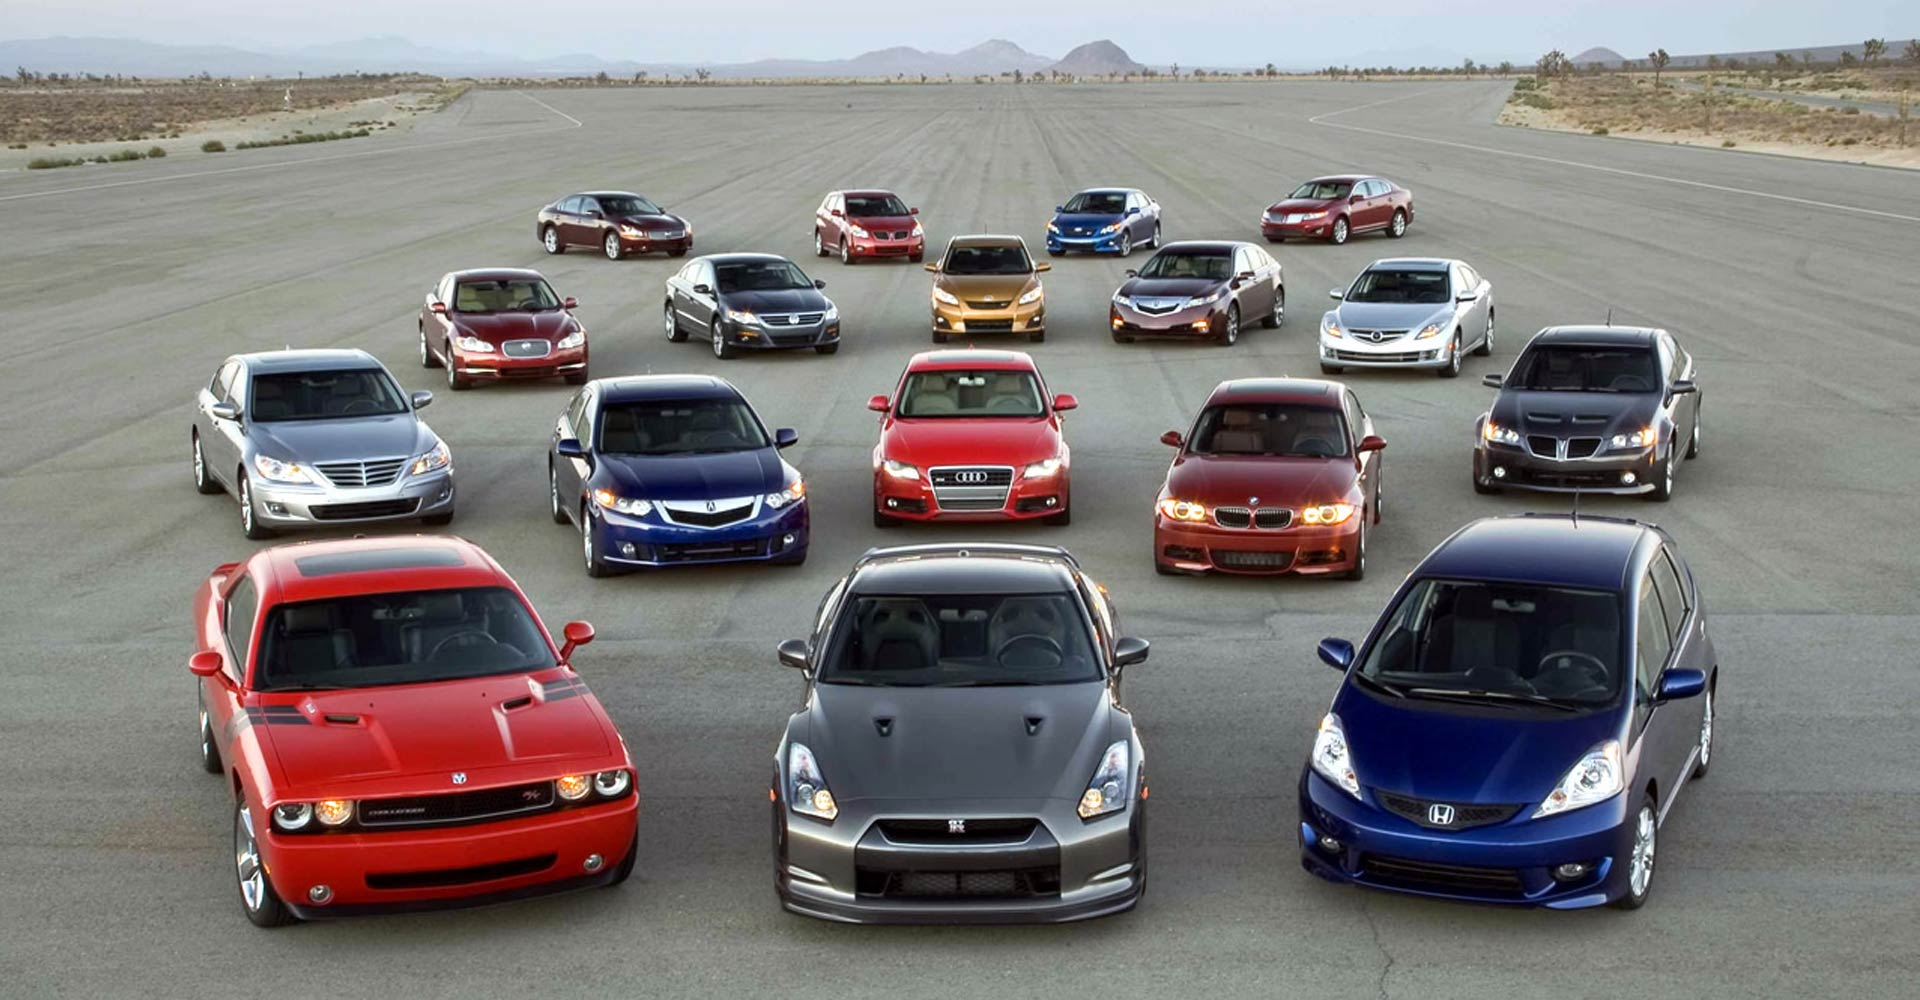 used cars baltimore under 3000 | used cars